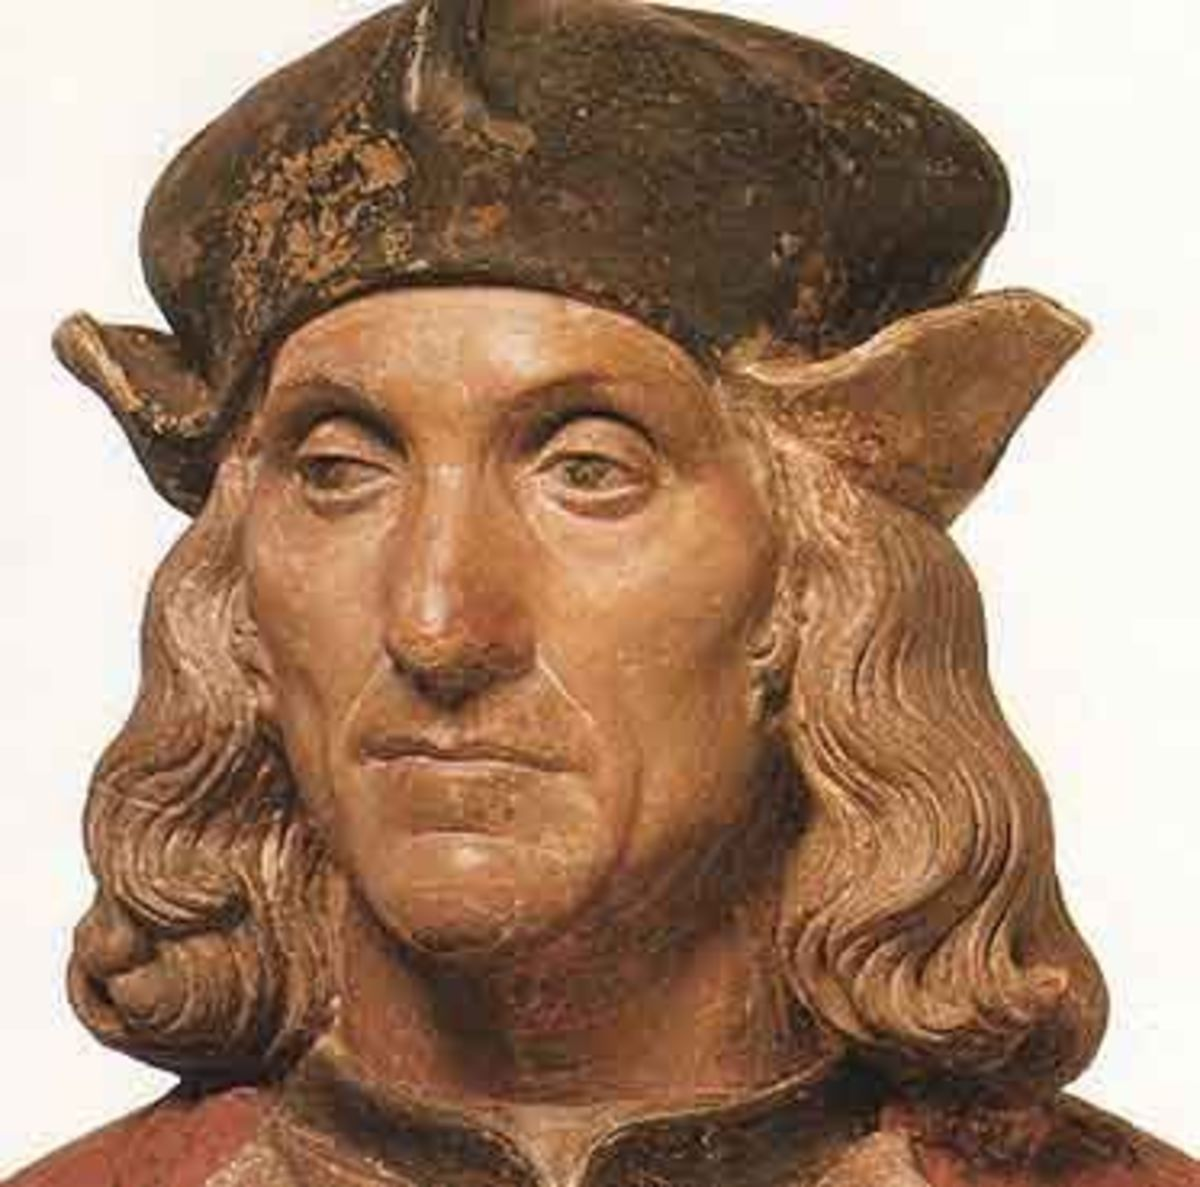 Henry Tudor, First native Breton to rule their own country since 1066, when French invaders conquered the native people and enslaved them.